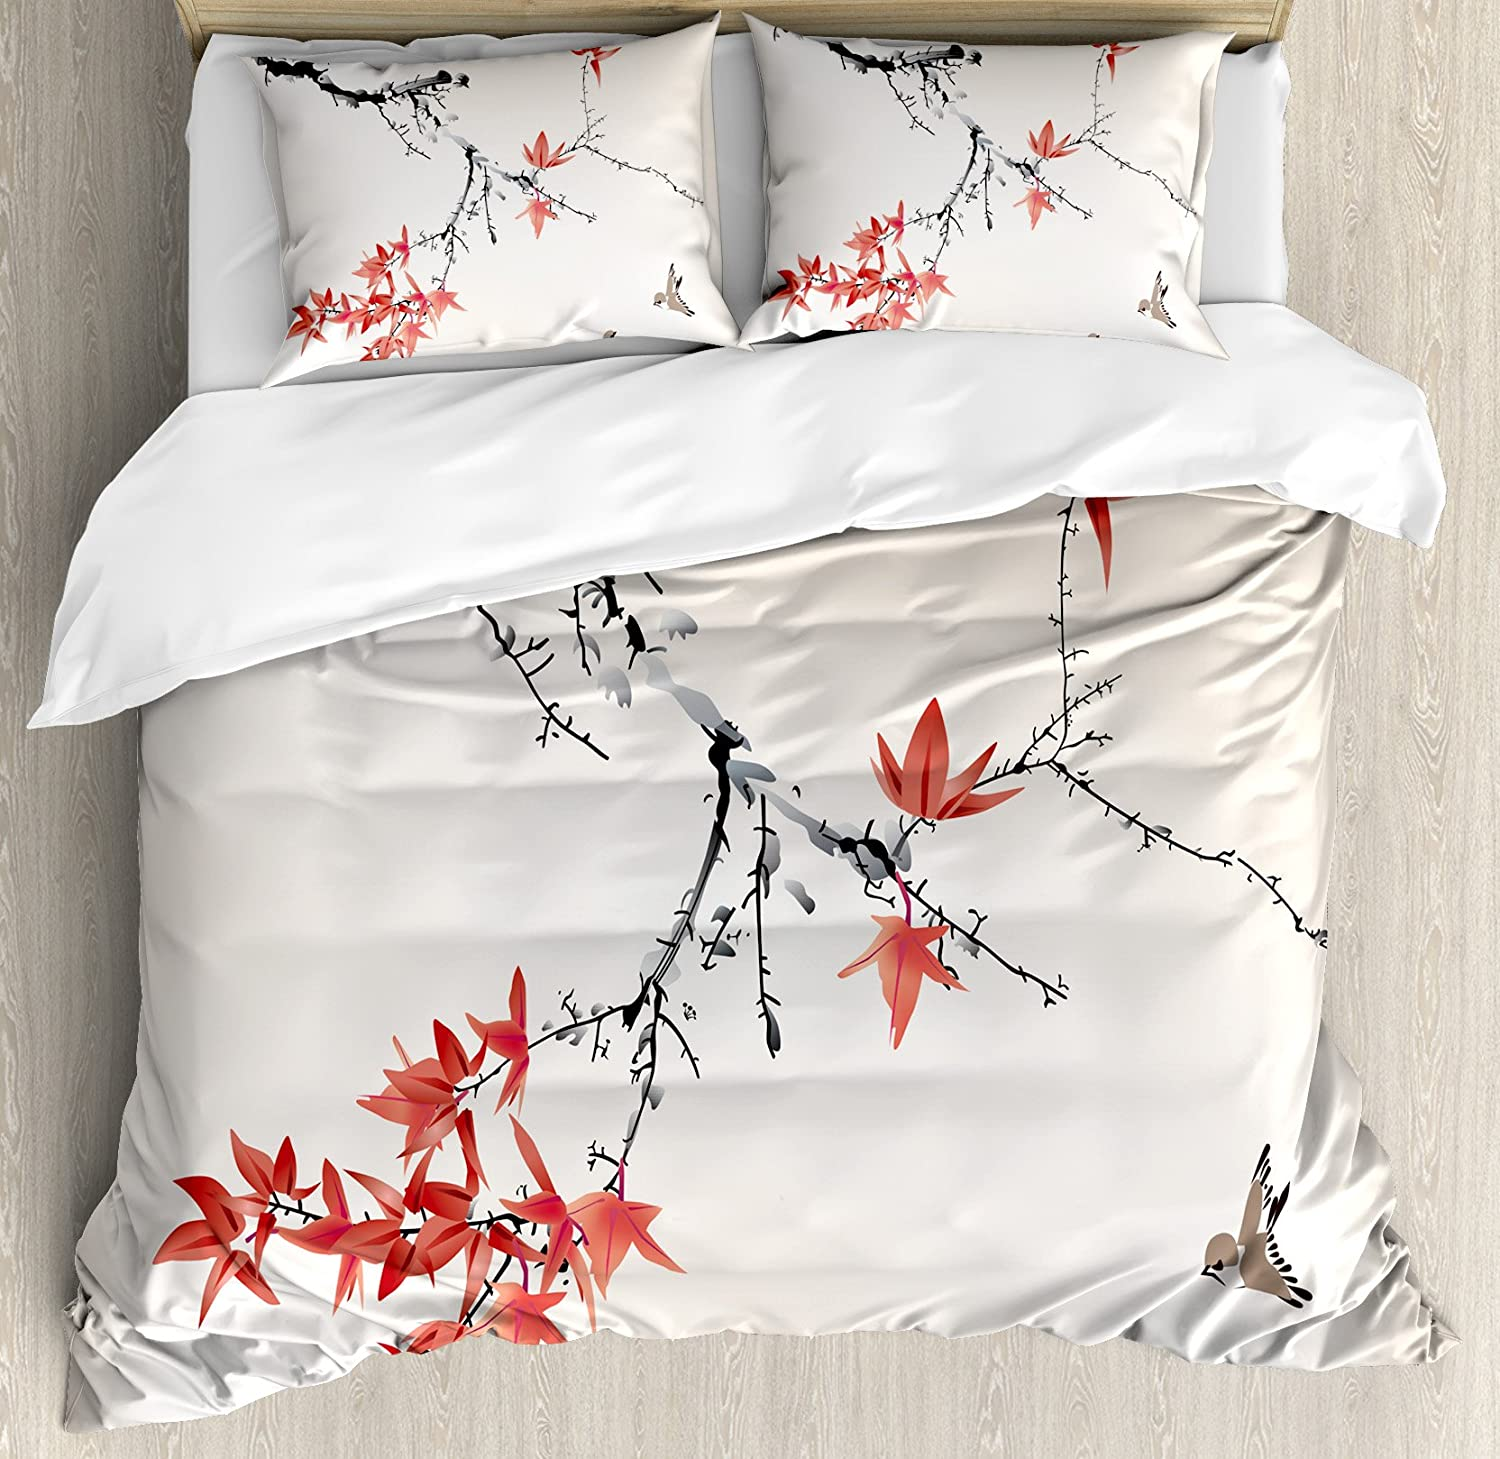 Ambesonne Japanese Duvet Cover Set, Cherry Blossom Sakura Tree Branches Romantic Spring Themed Watercolor Picture, Decorative 3 Piece Bedding Set with 2 Pillow Shams, King Size, Coral Black